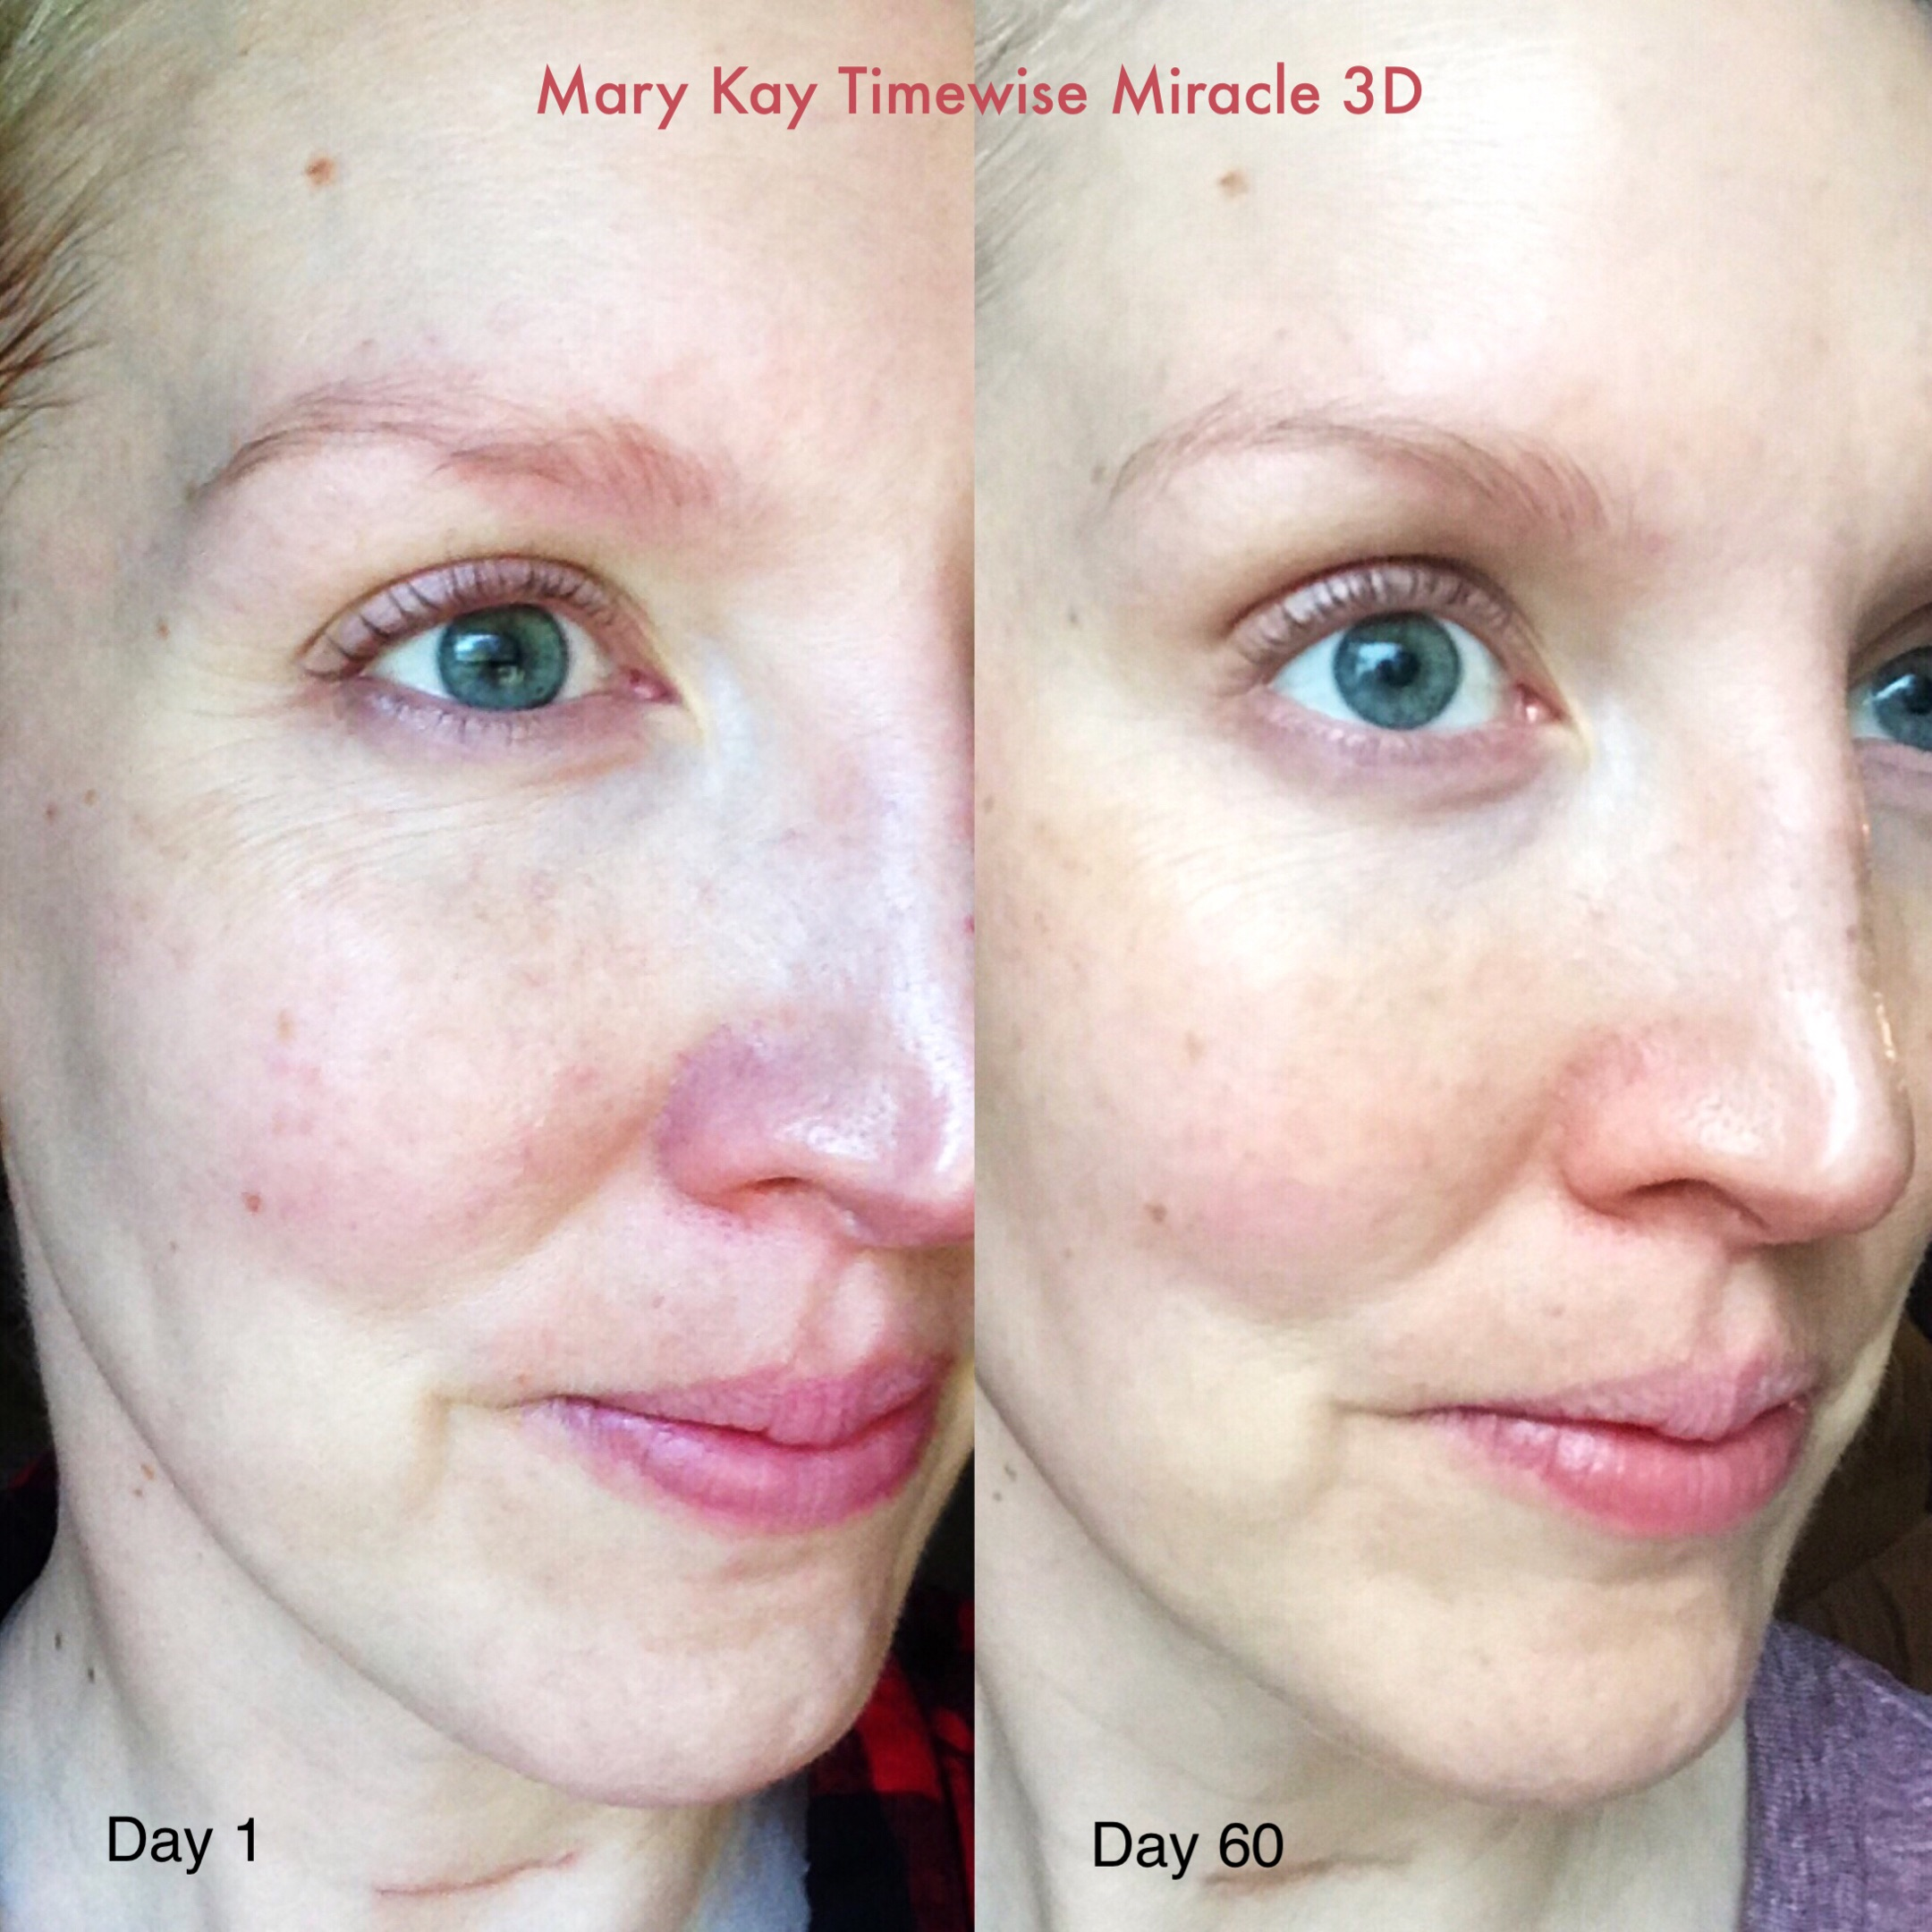 Day 1 - Day 60 using Mary Kay Timewise Miracle 3D Skincare Morning + Night. This photo is unfiltered and taken in natural light.